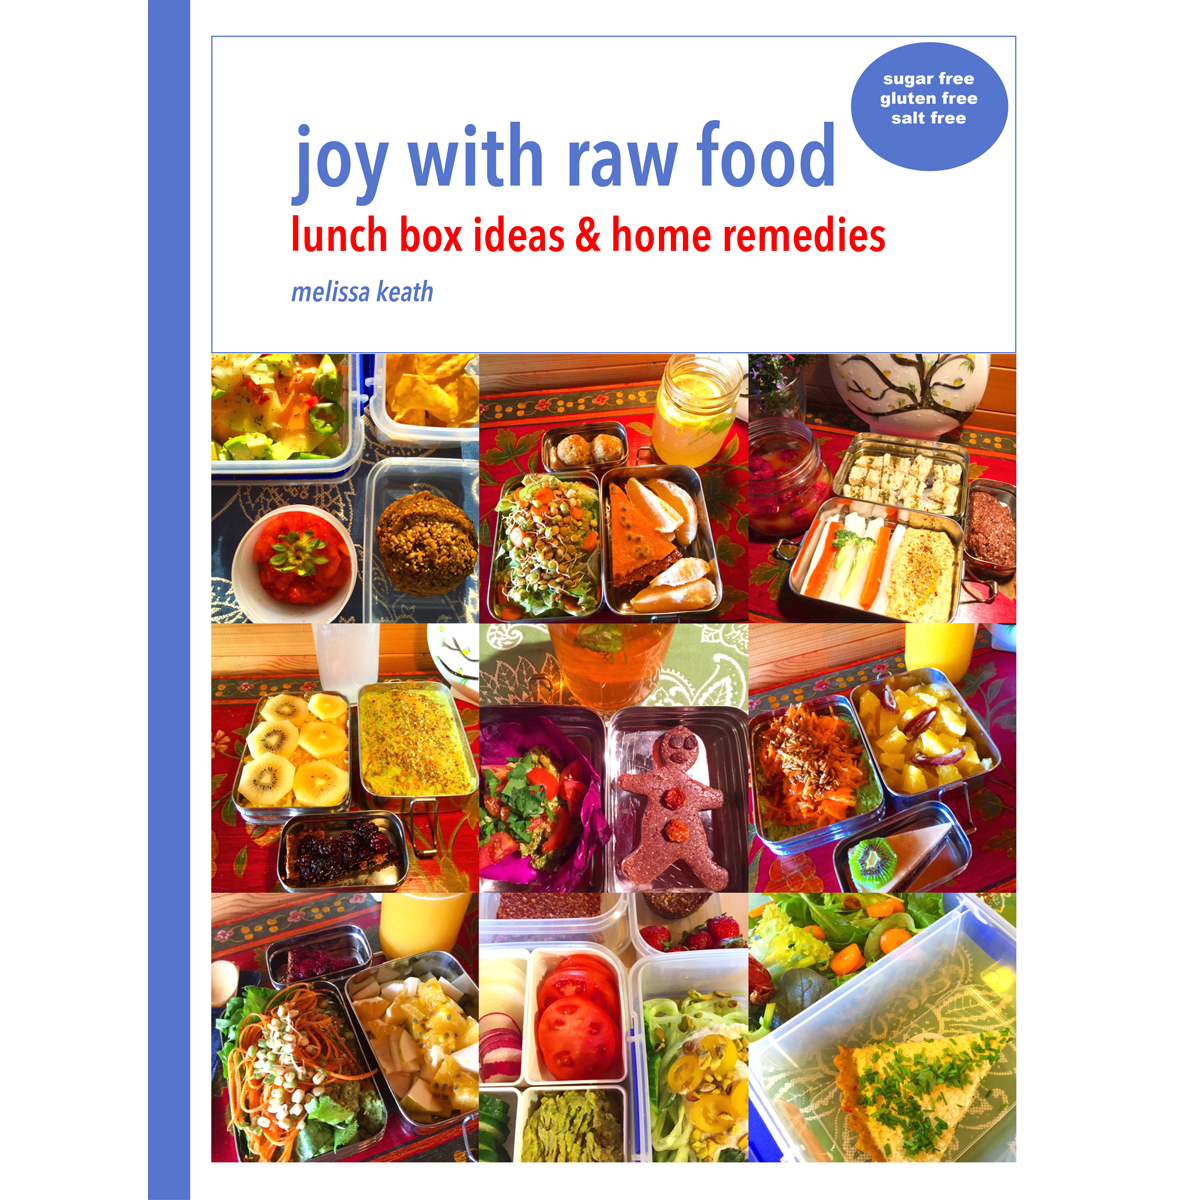 lunch box ideas & home remedies - joywithrawfood - ruhani publishing